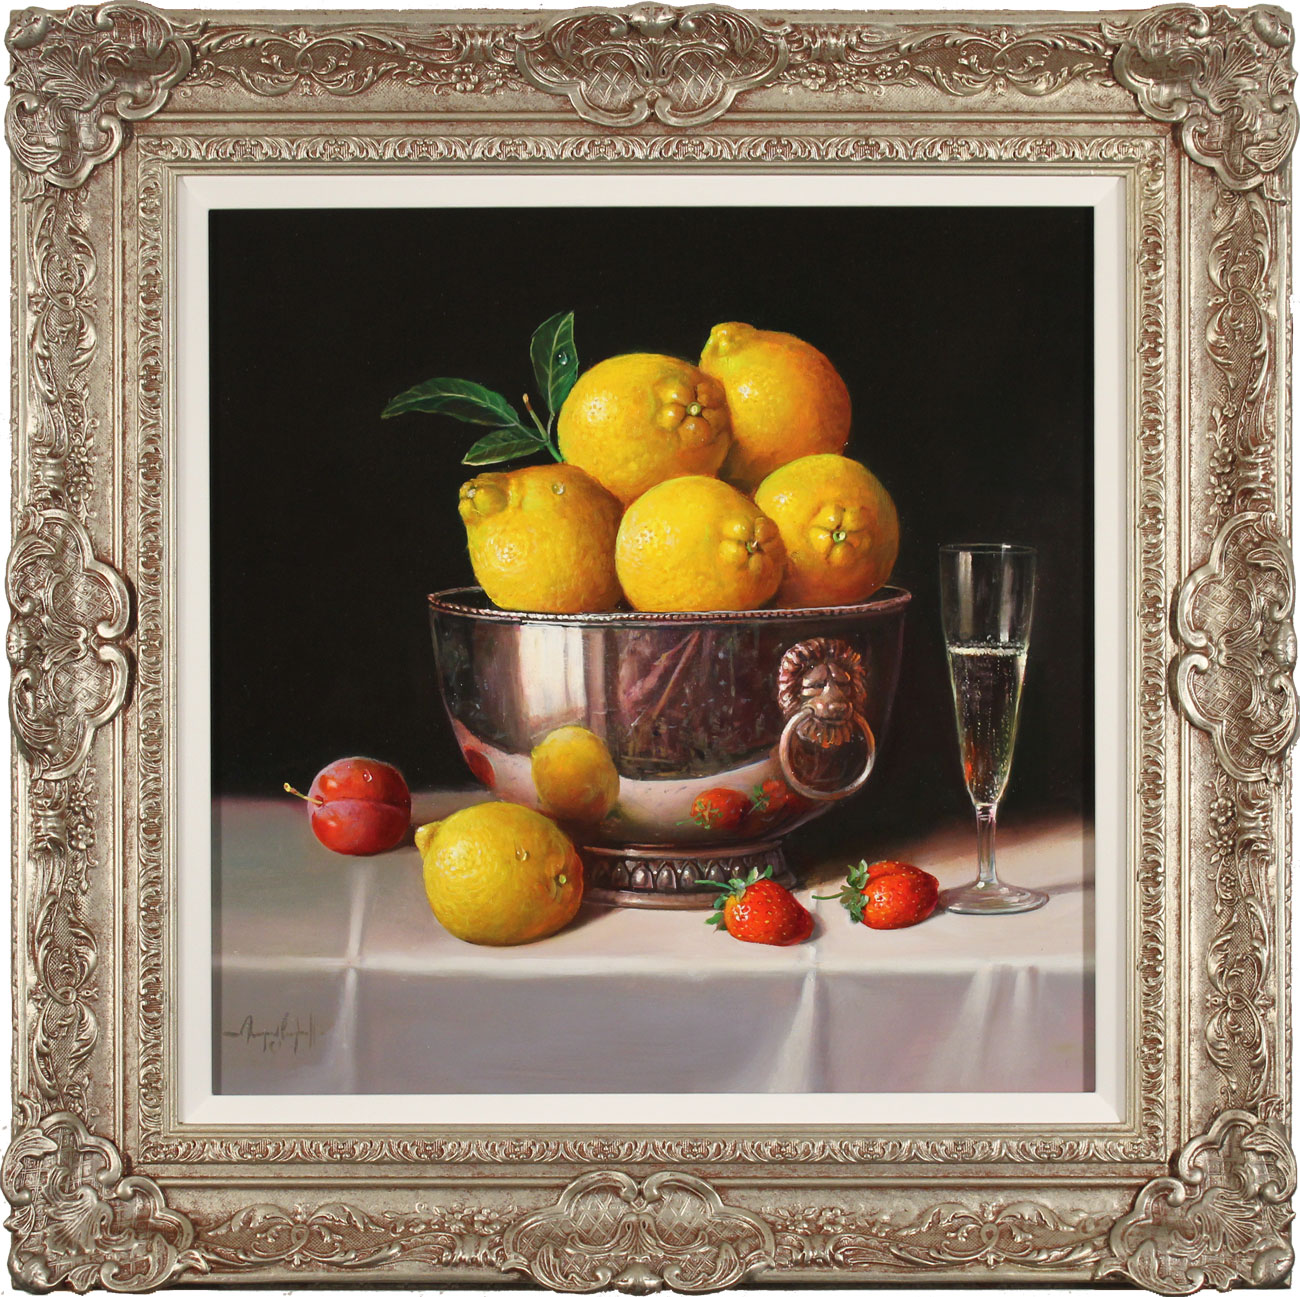 Raymond Campbell, Original oil painting on panel, Bowl of Lemons Click to enlarge